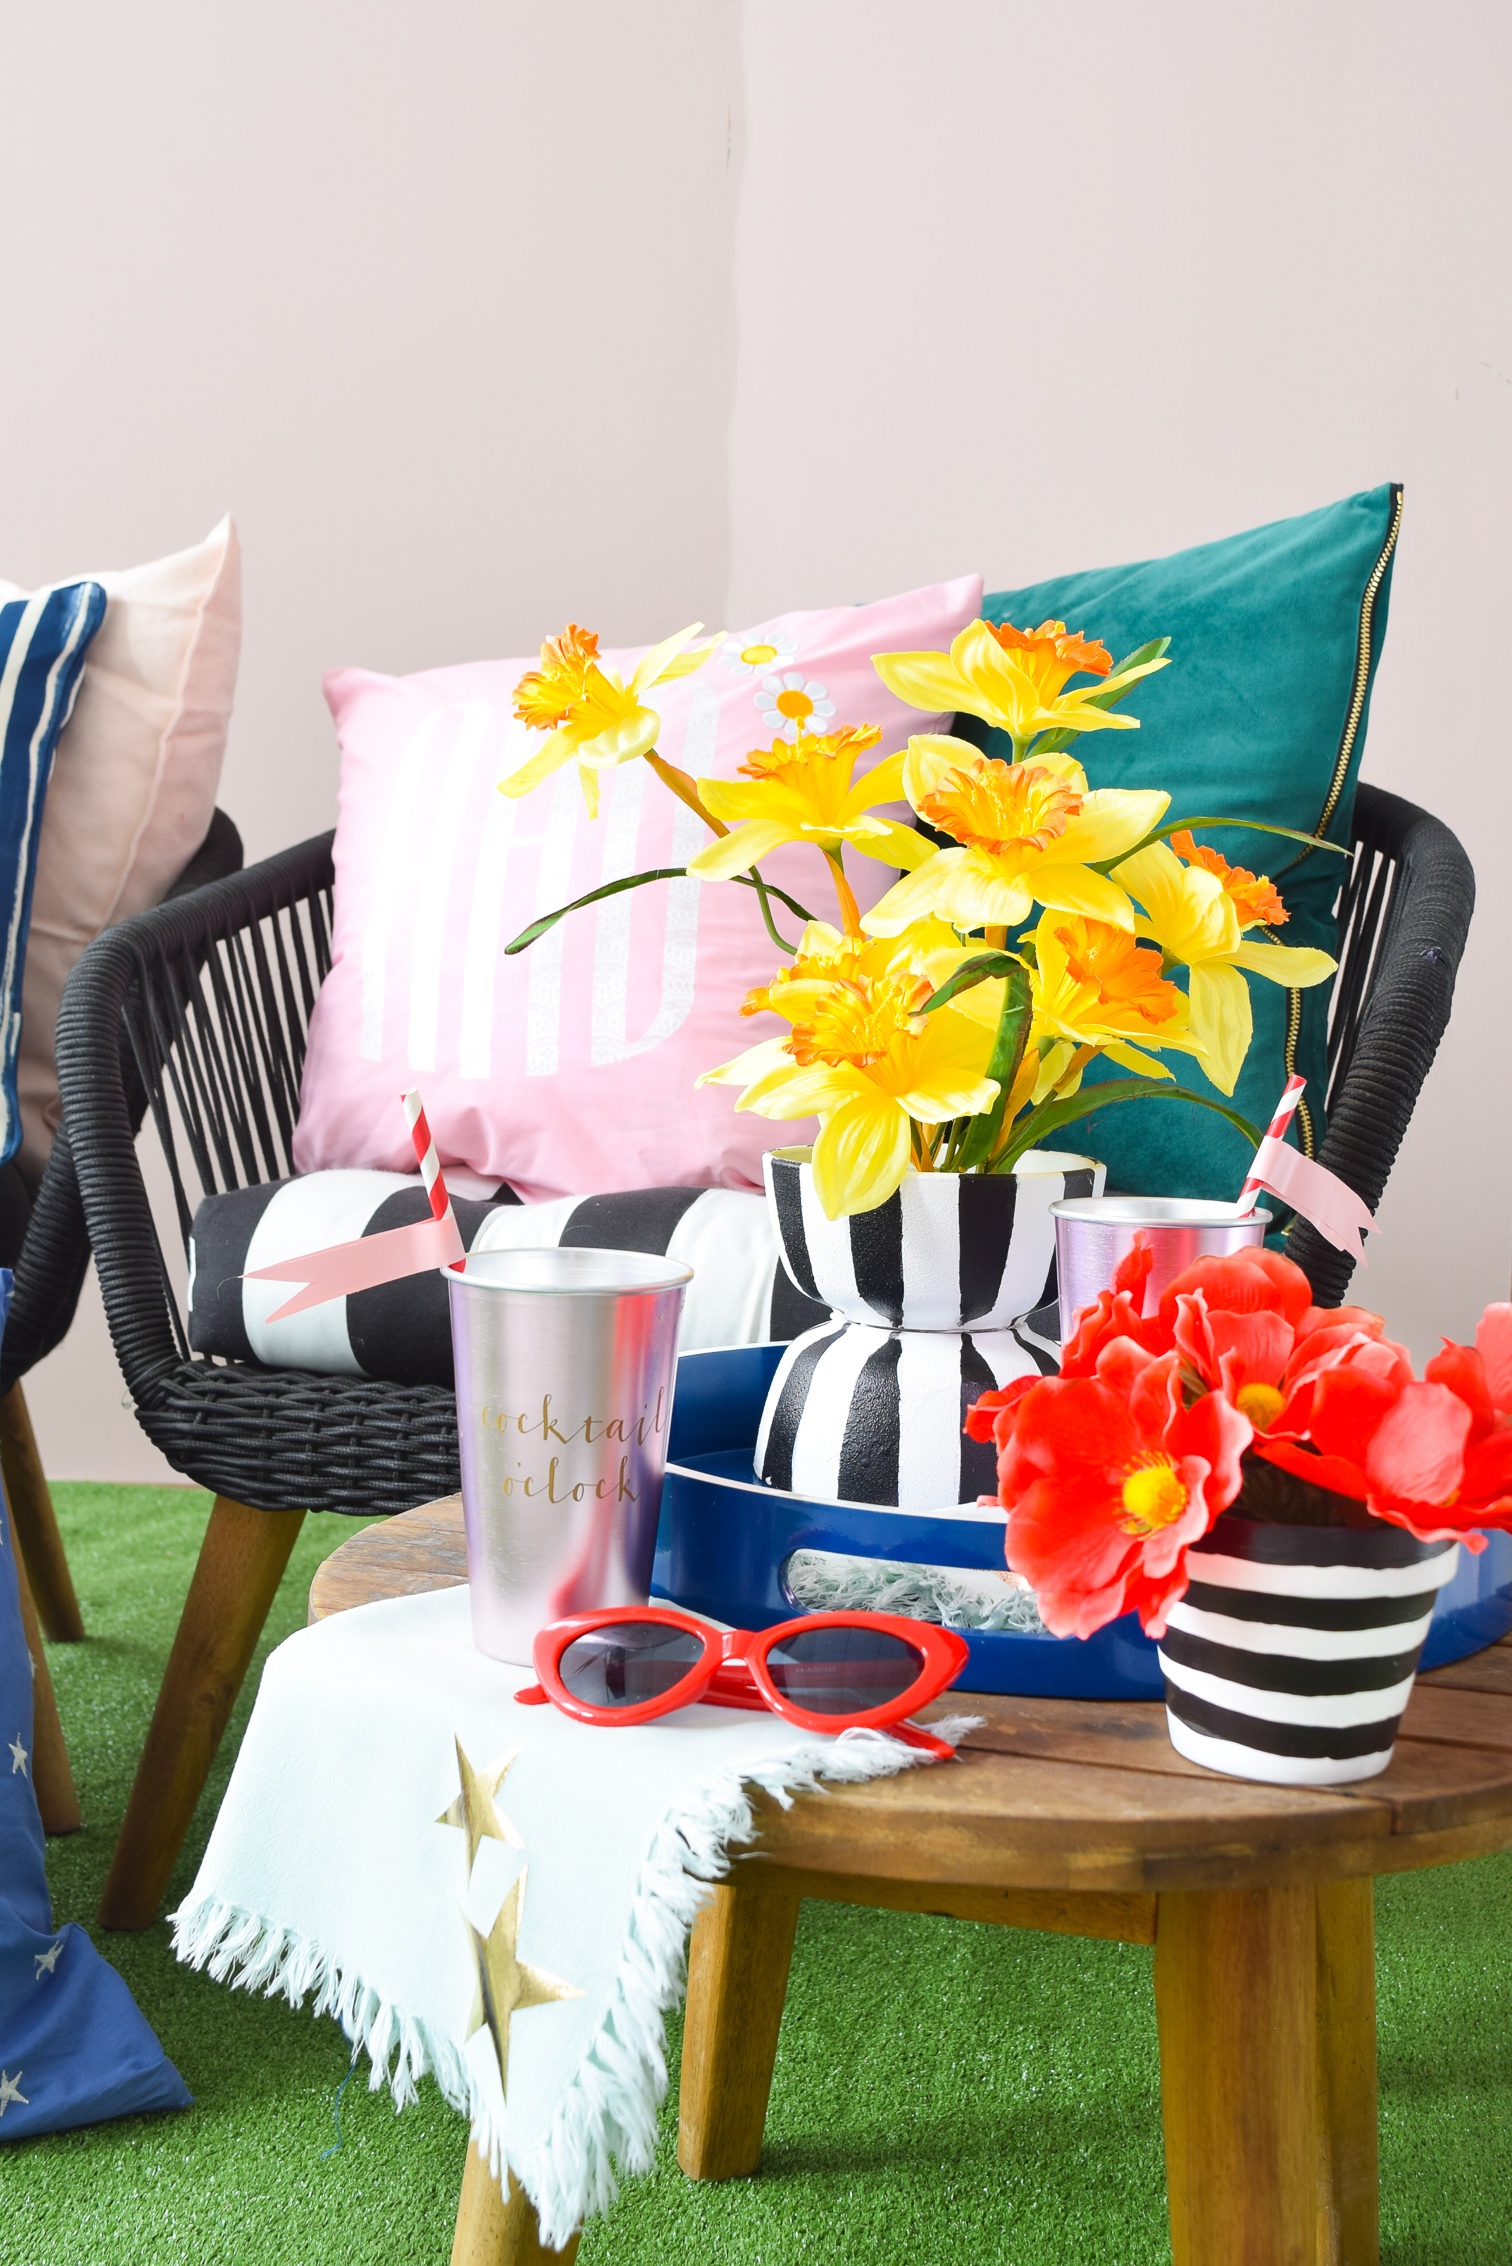 Patterned Iron on Monogram Pillows are where it is at this season. Get your hands on Cricut's new pattern samplers, and create some funky, retro cool pillows for your home now.